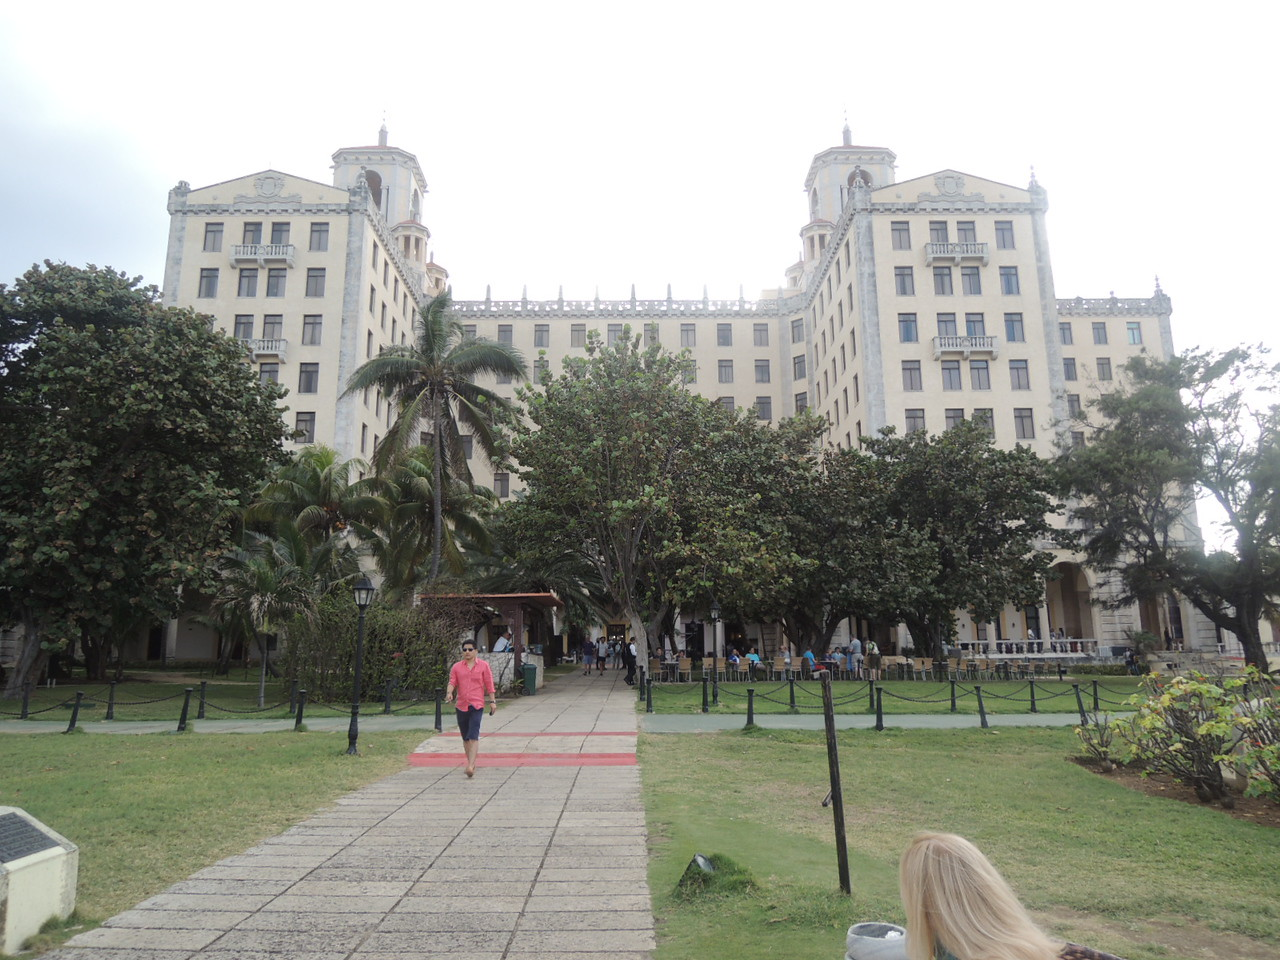 Looking back at the Hotel Nacional - quite a place.